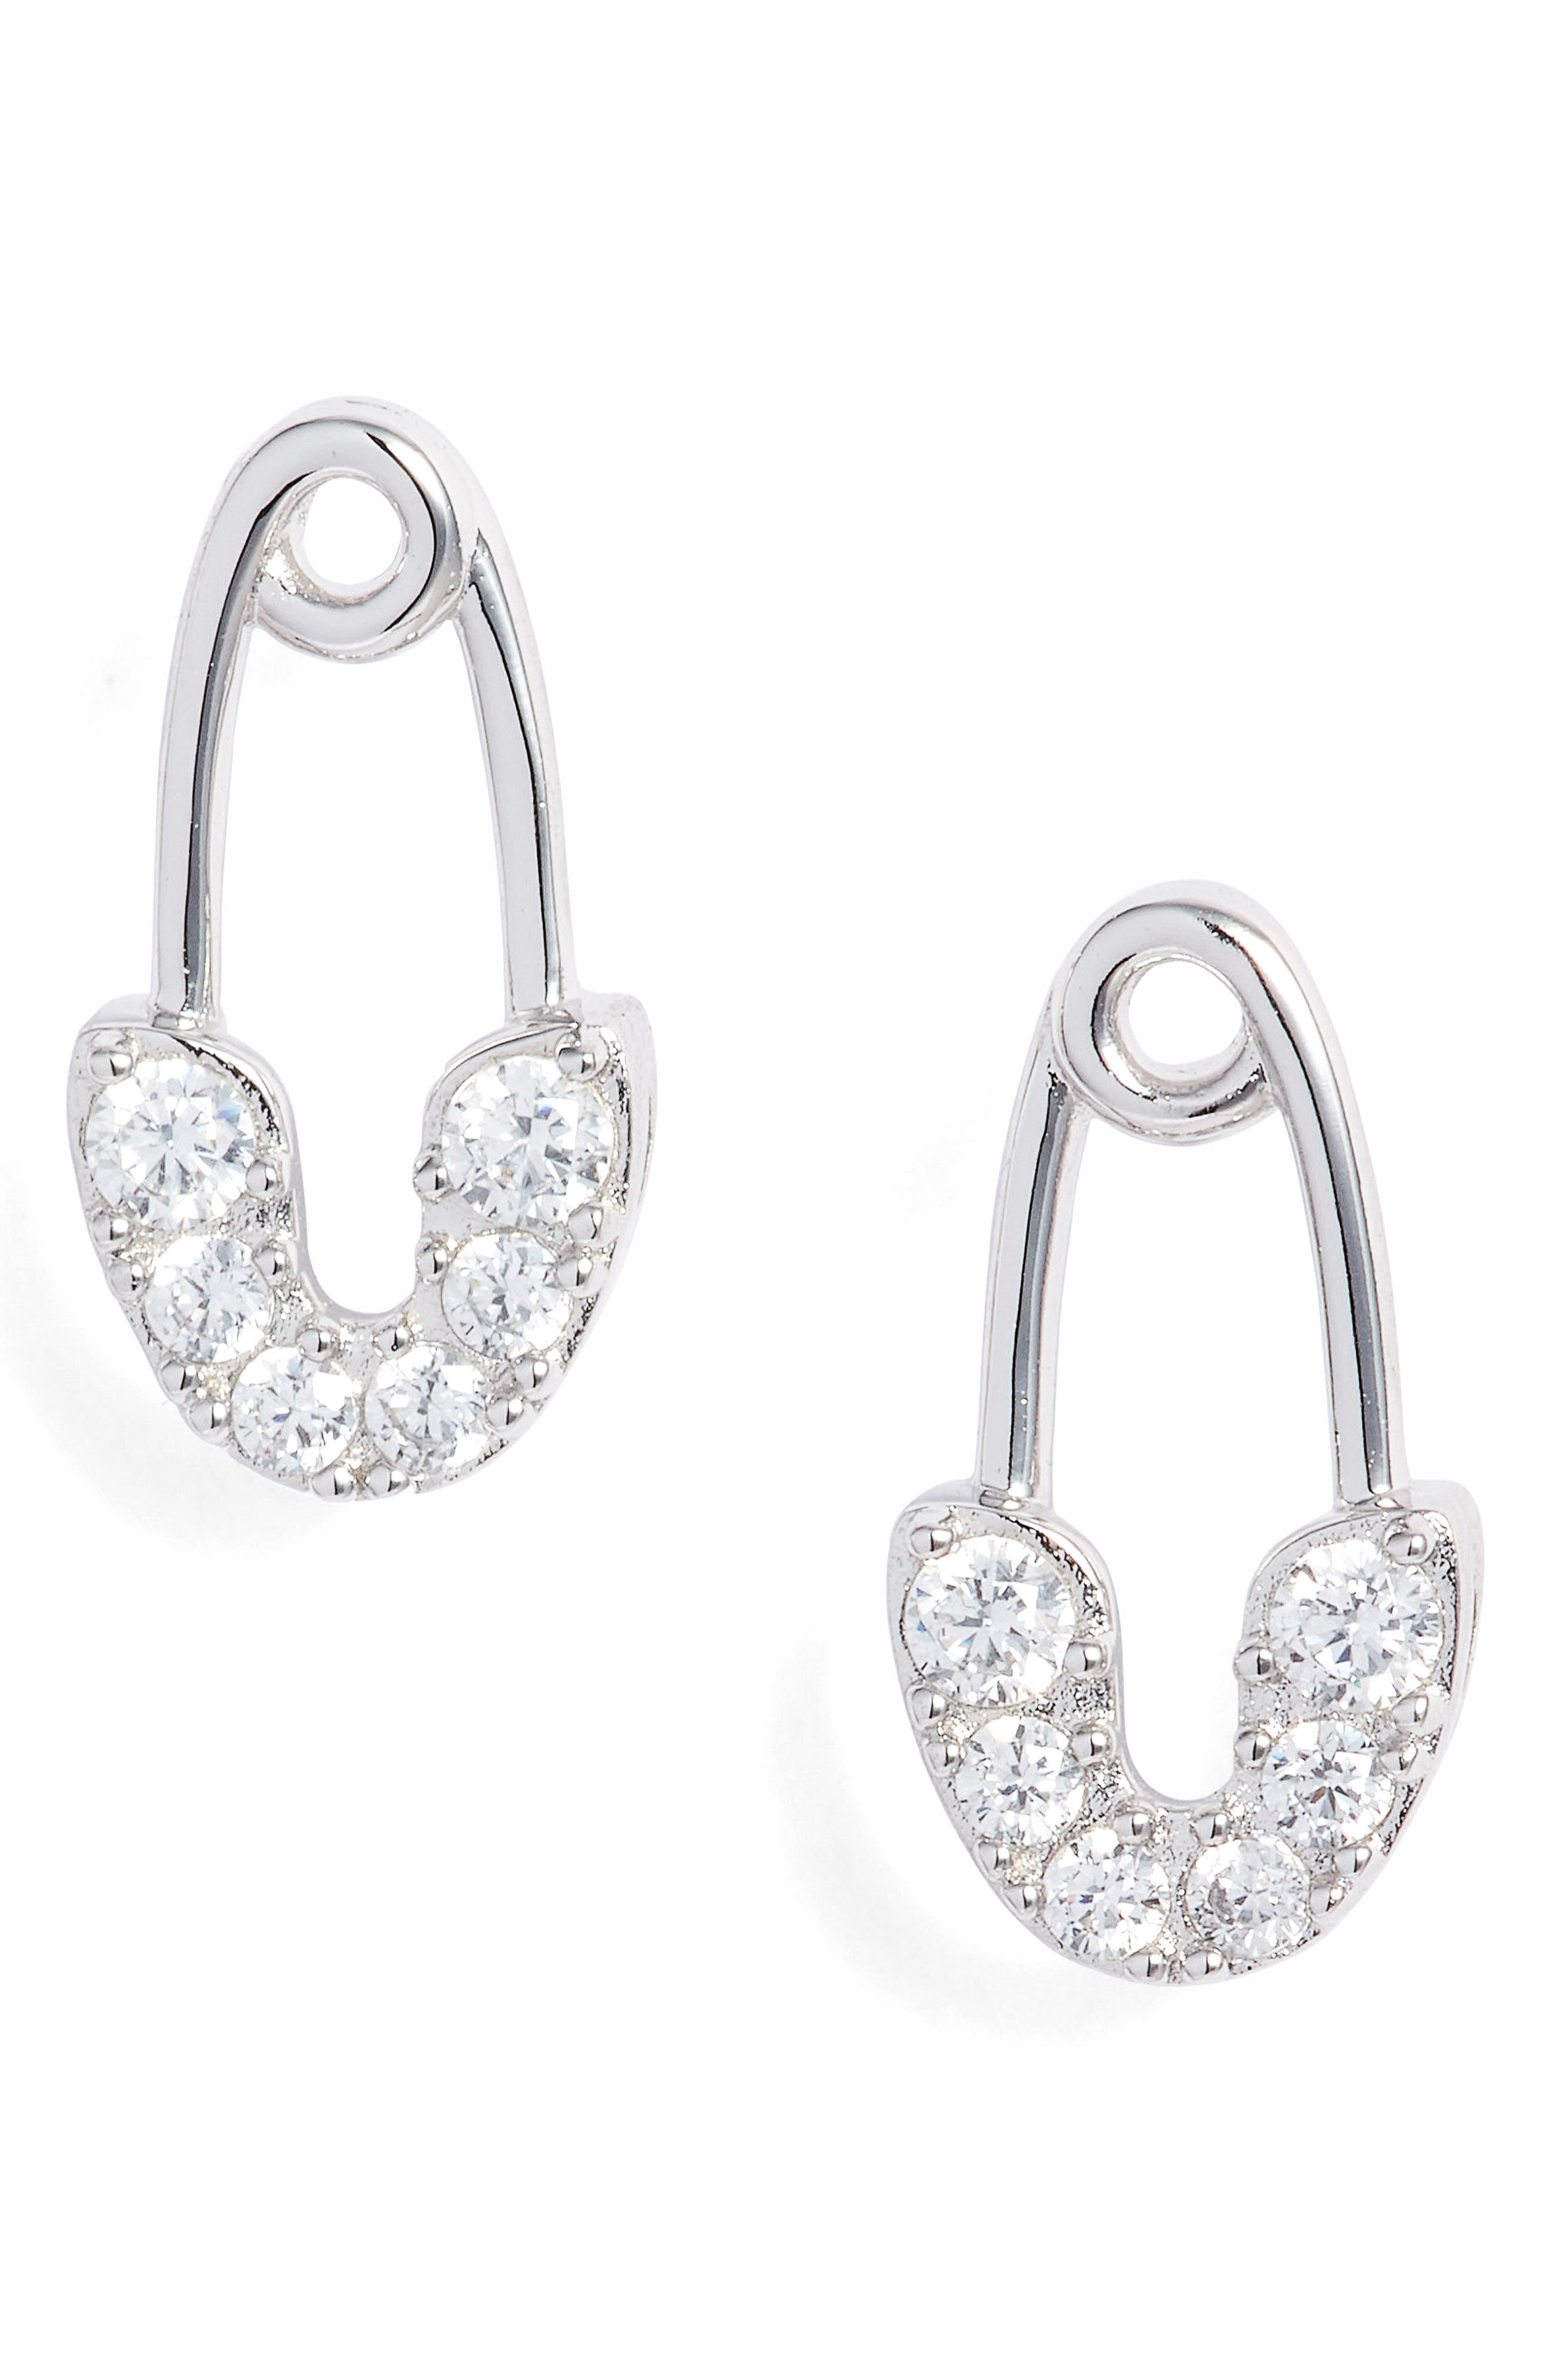 Reminisce Safety Pin Cubic Zirconia Stud Earrings,                             Main thumbnail 1, color,                             040